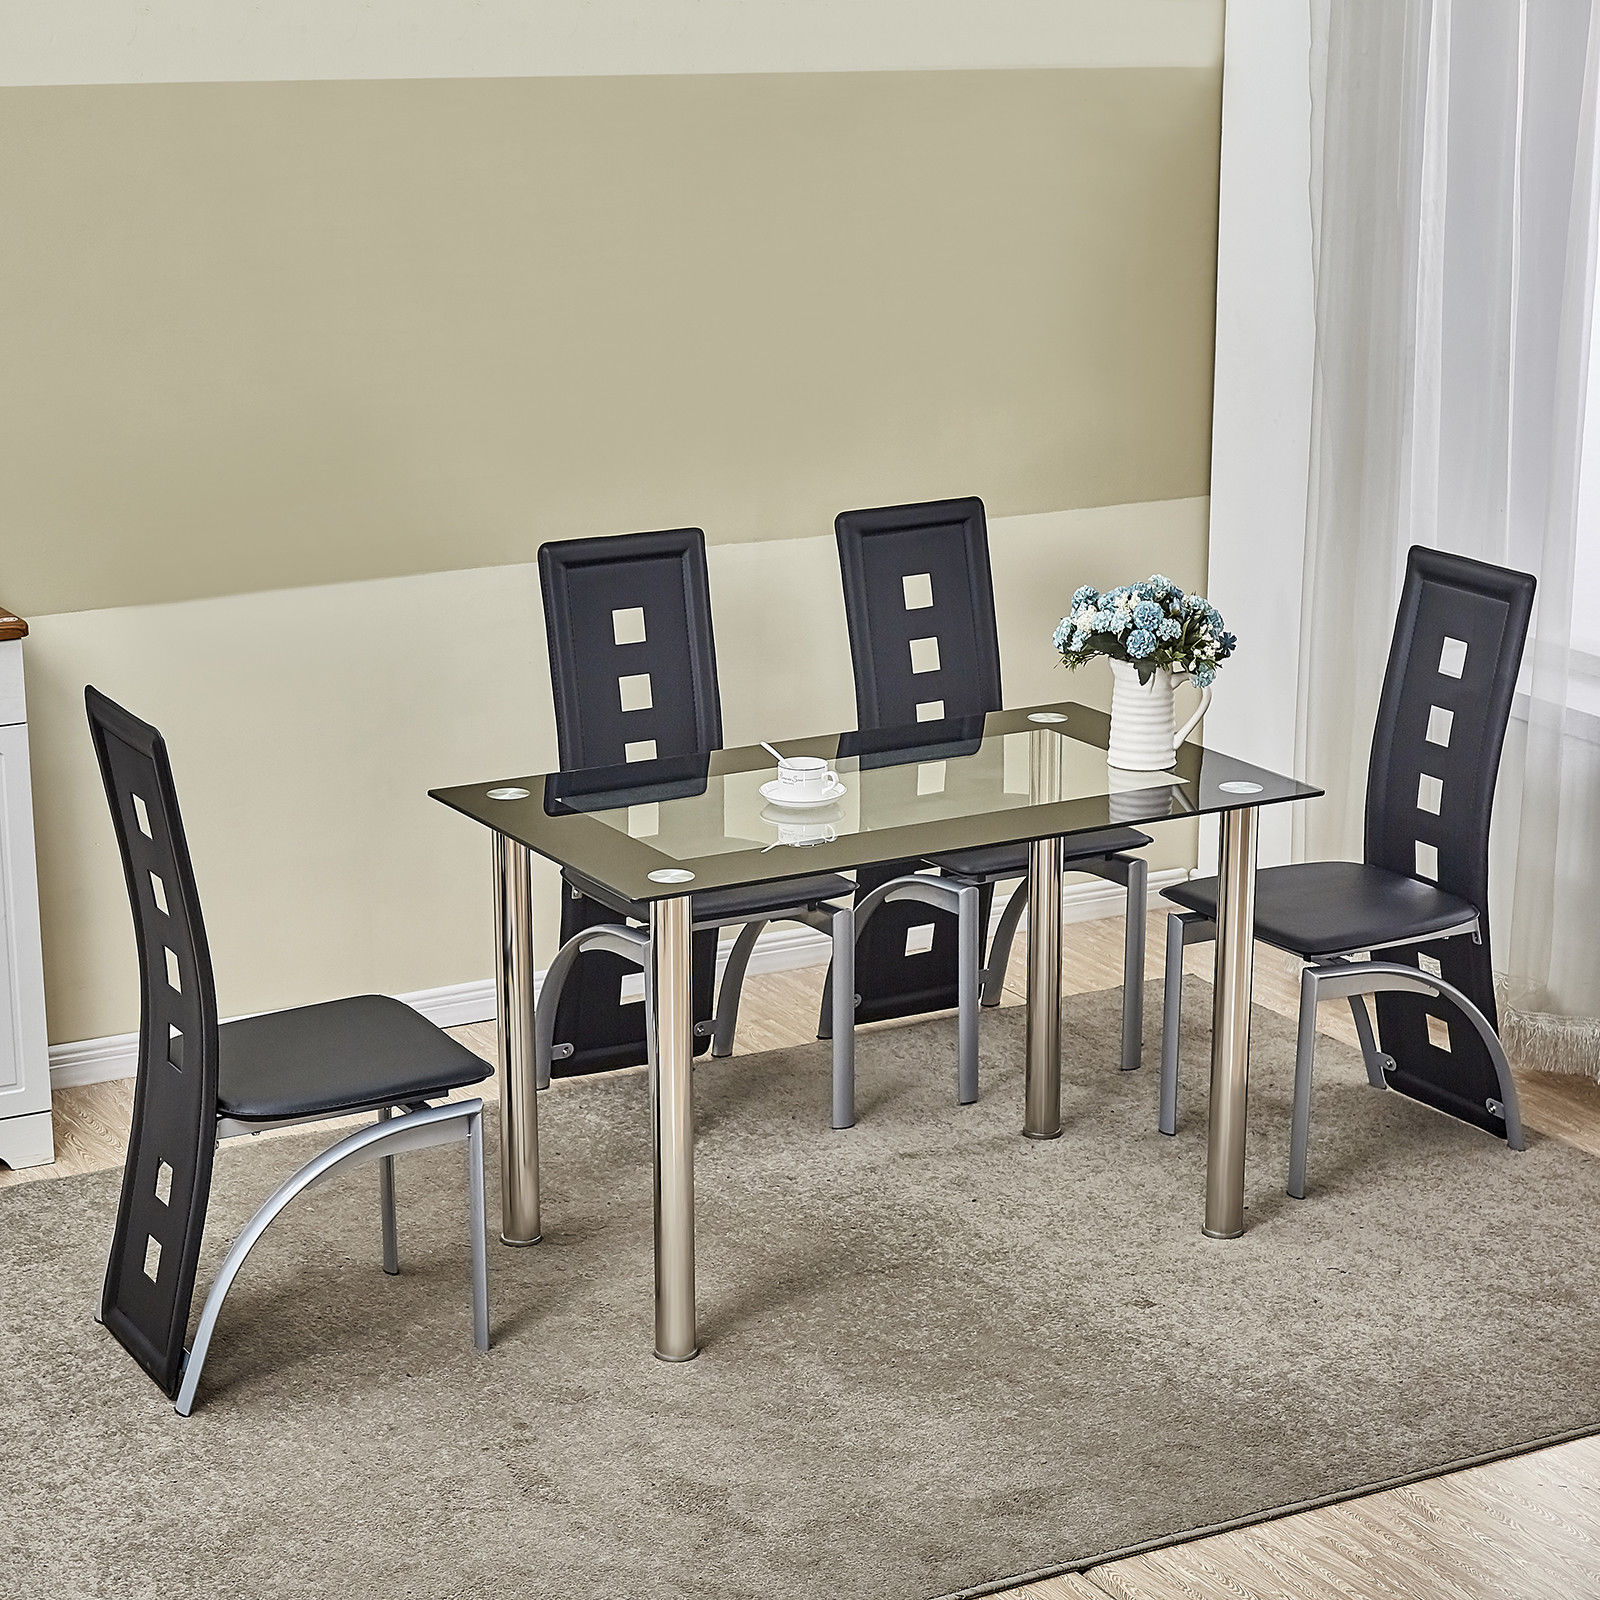 Fabulous Details About 5 Piece Glass Dining Table Set 4 Chairs Room Kitchen Breakfast Furniture Download Free Architecture Designs Viewormadebymaigaardcom